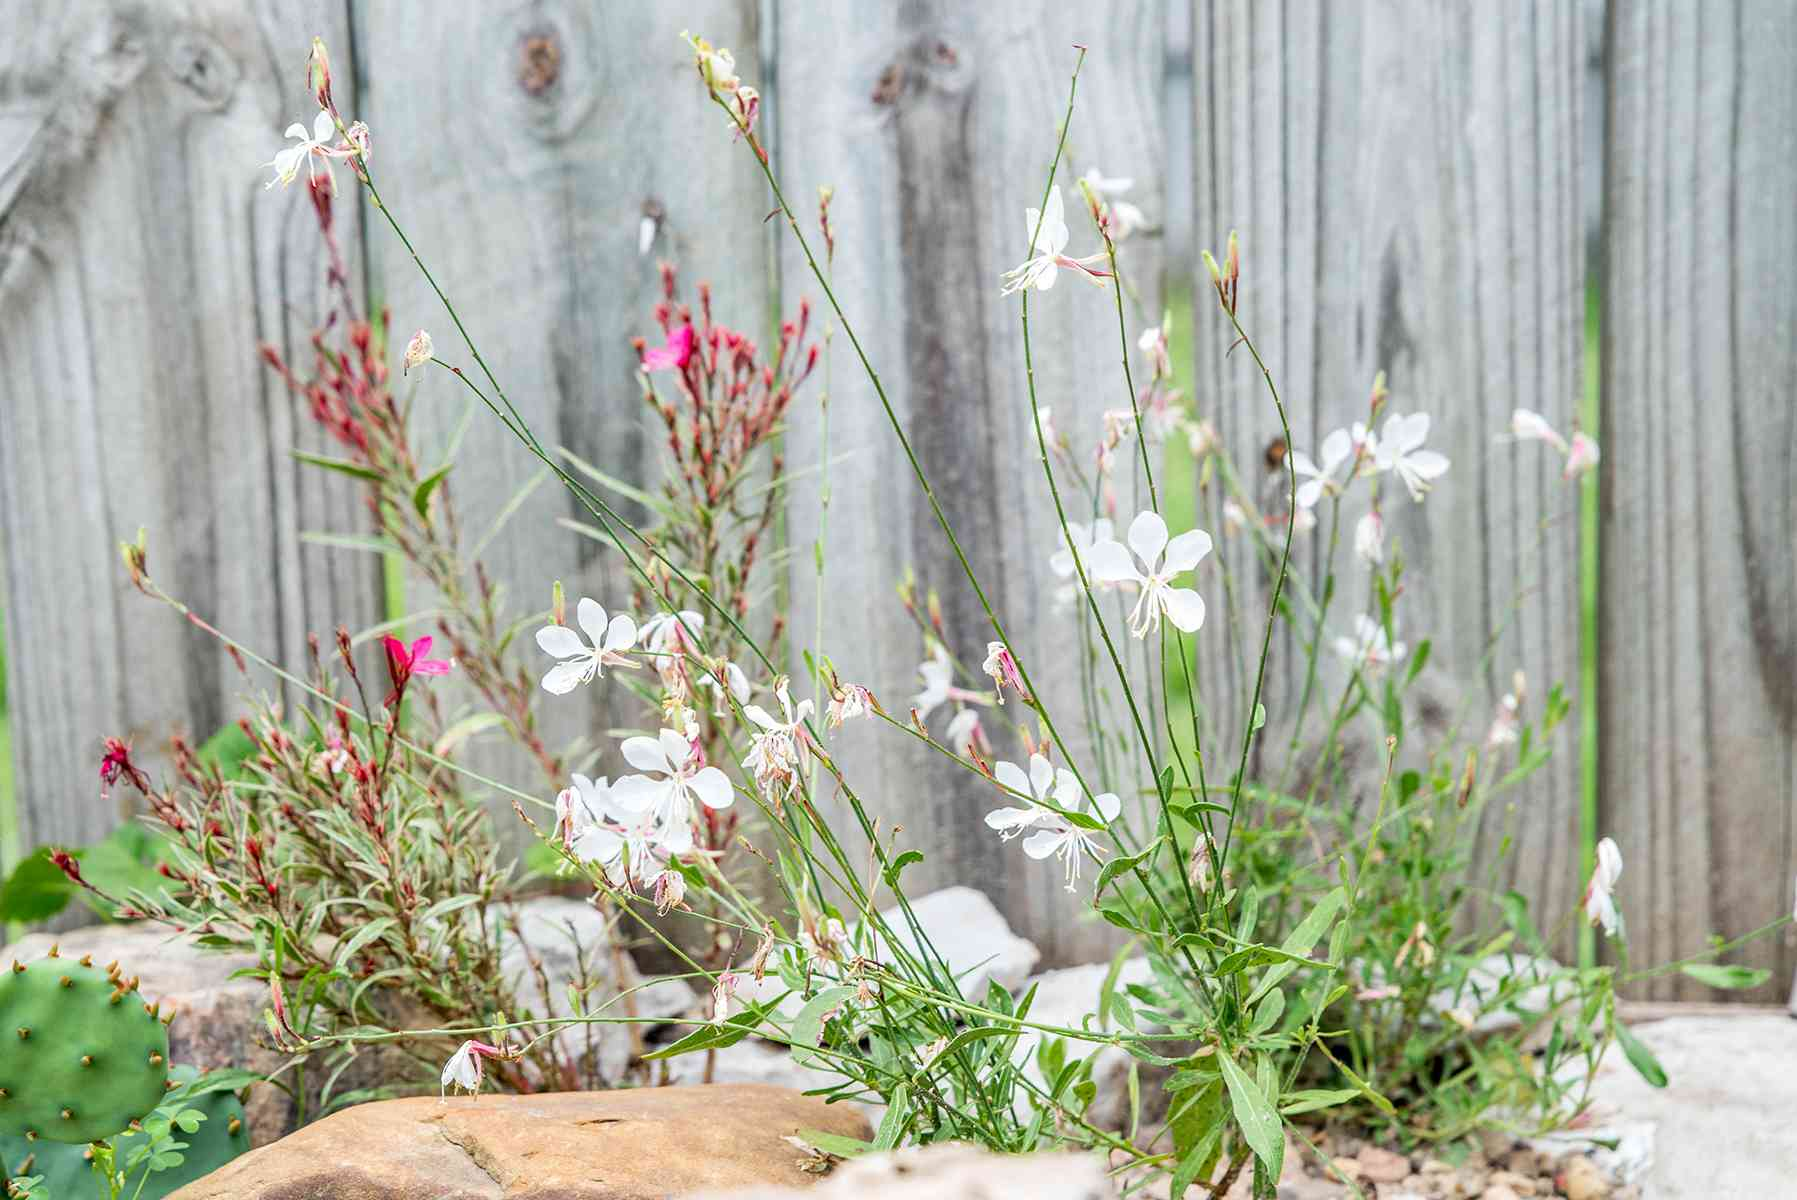 gaura flowers used in landscaping